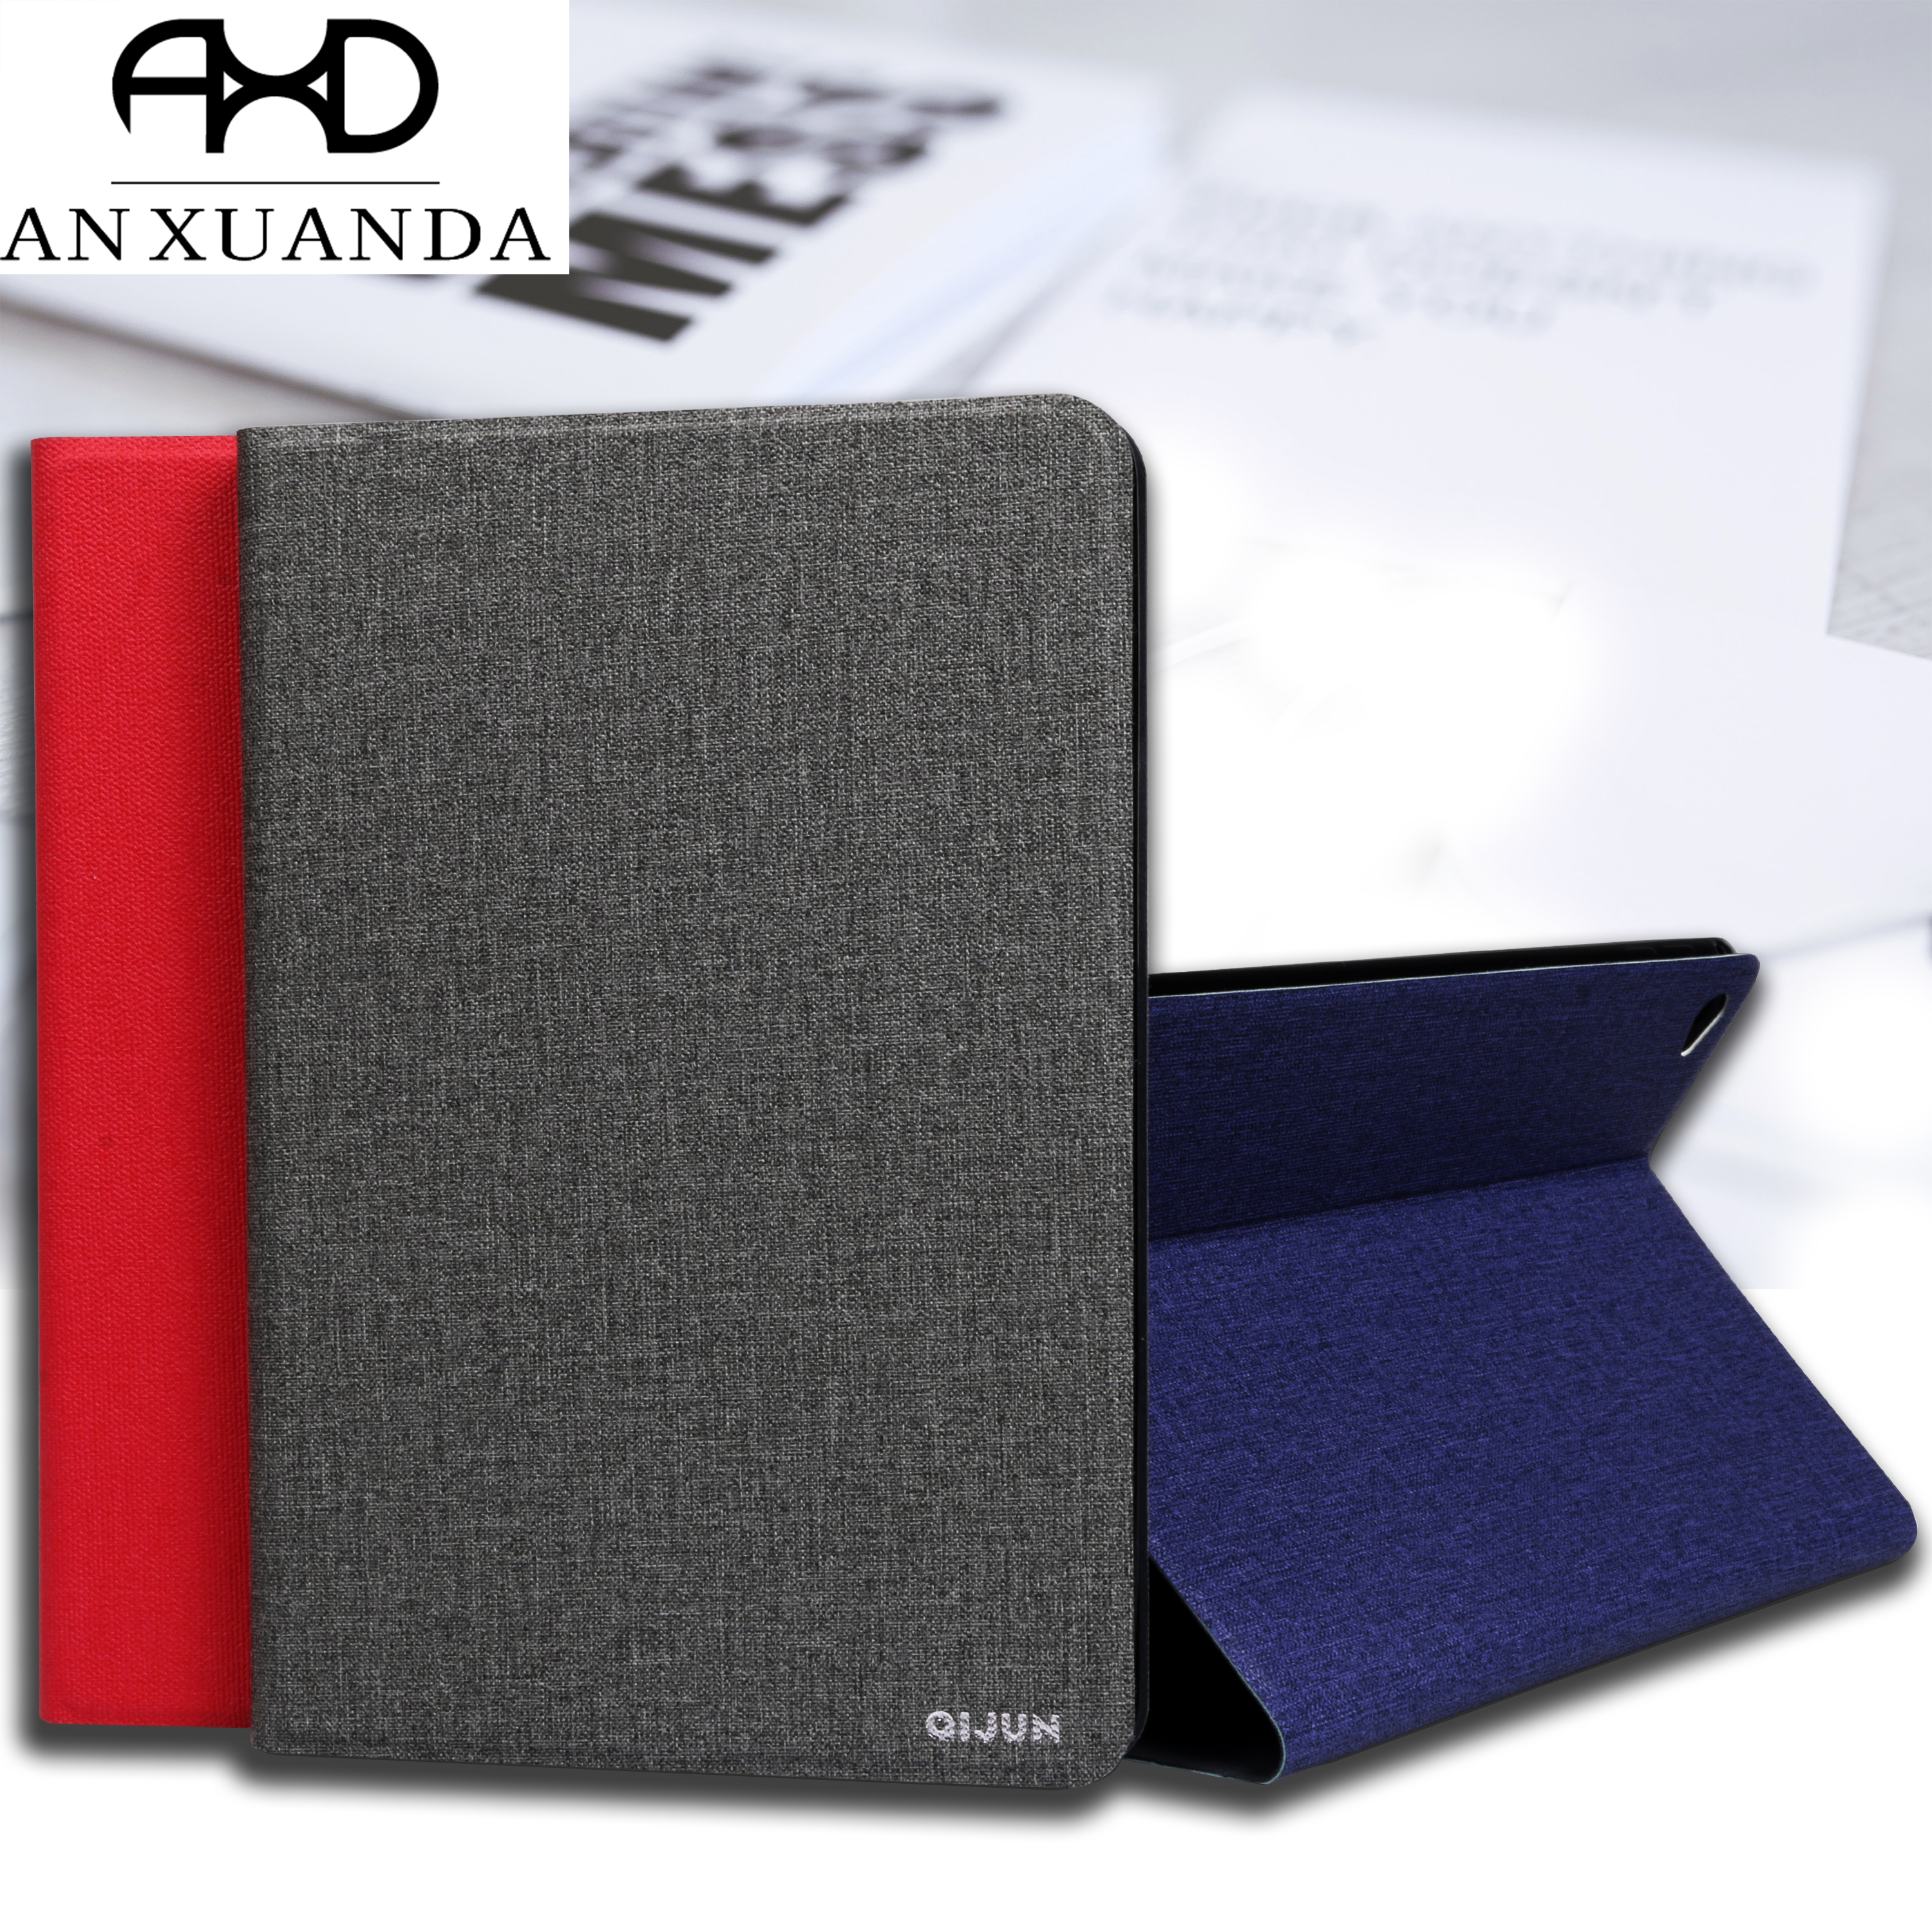 For Samsung Galaxy Tab S2 9.7 Inch T810 QIJUN Case For Galaxy SM-T810 T813 T815 T819 Case Slim Flip Cover Soft Protective Shell